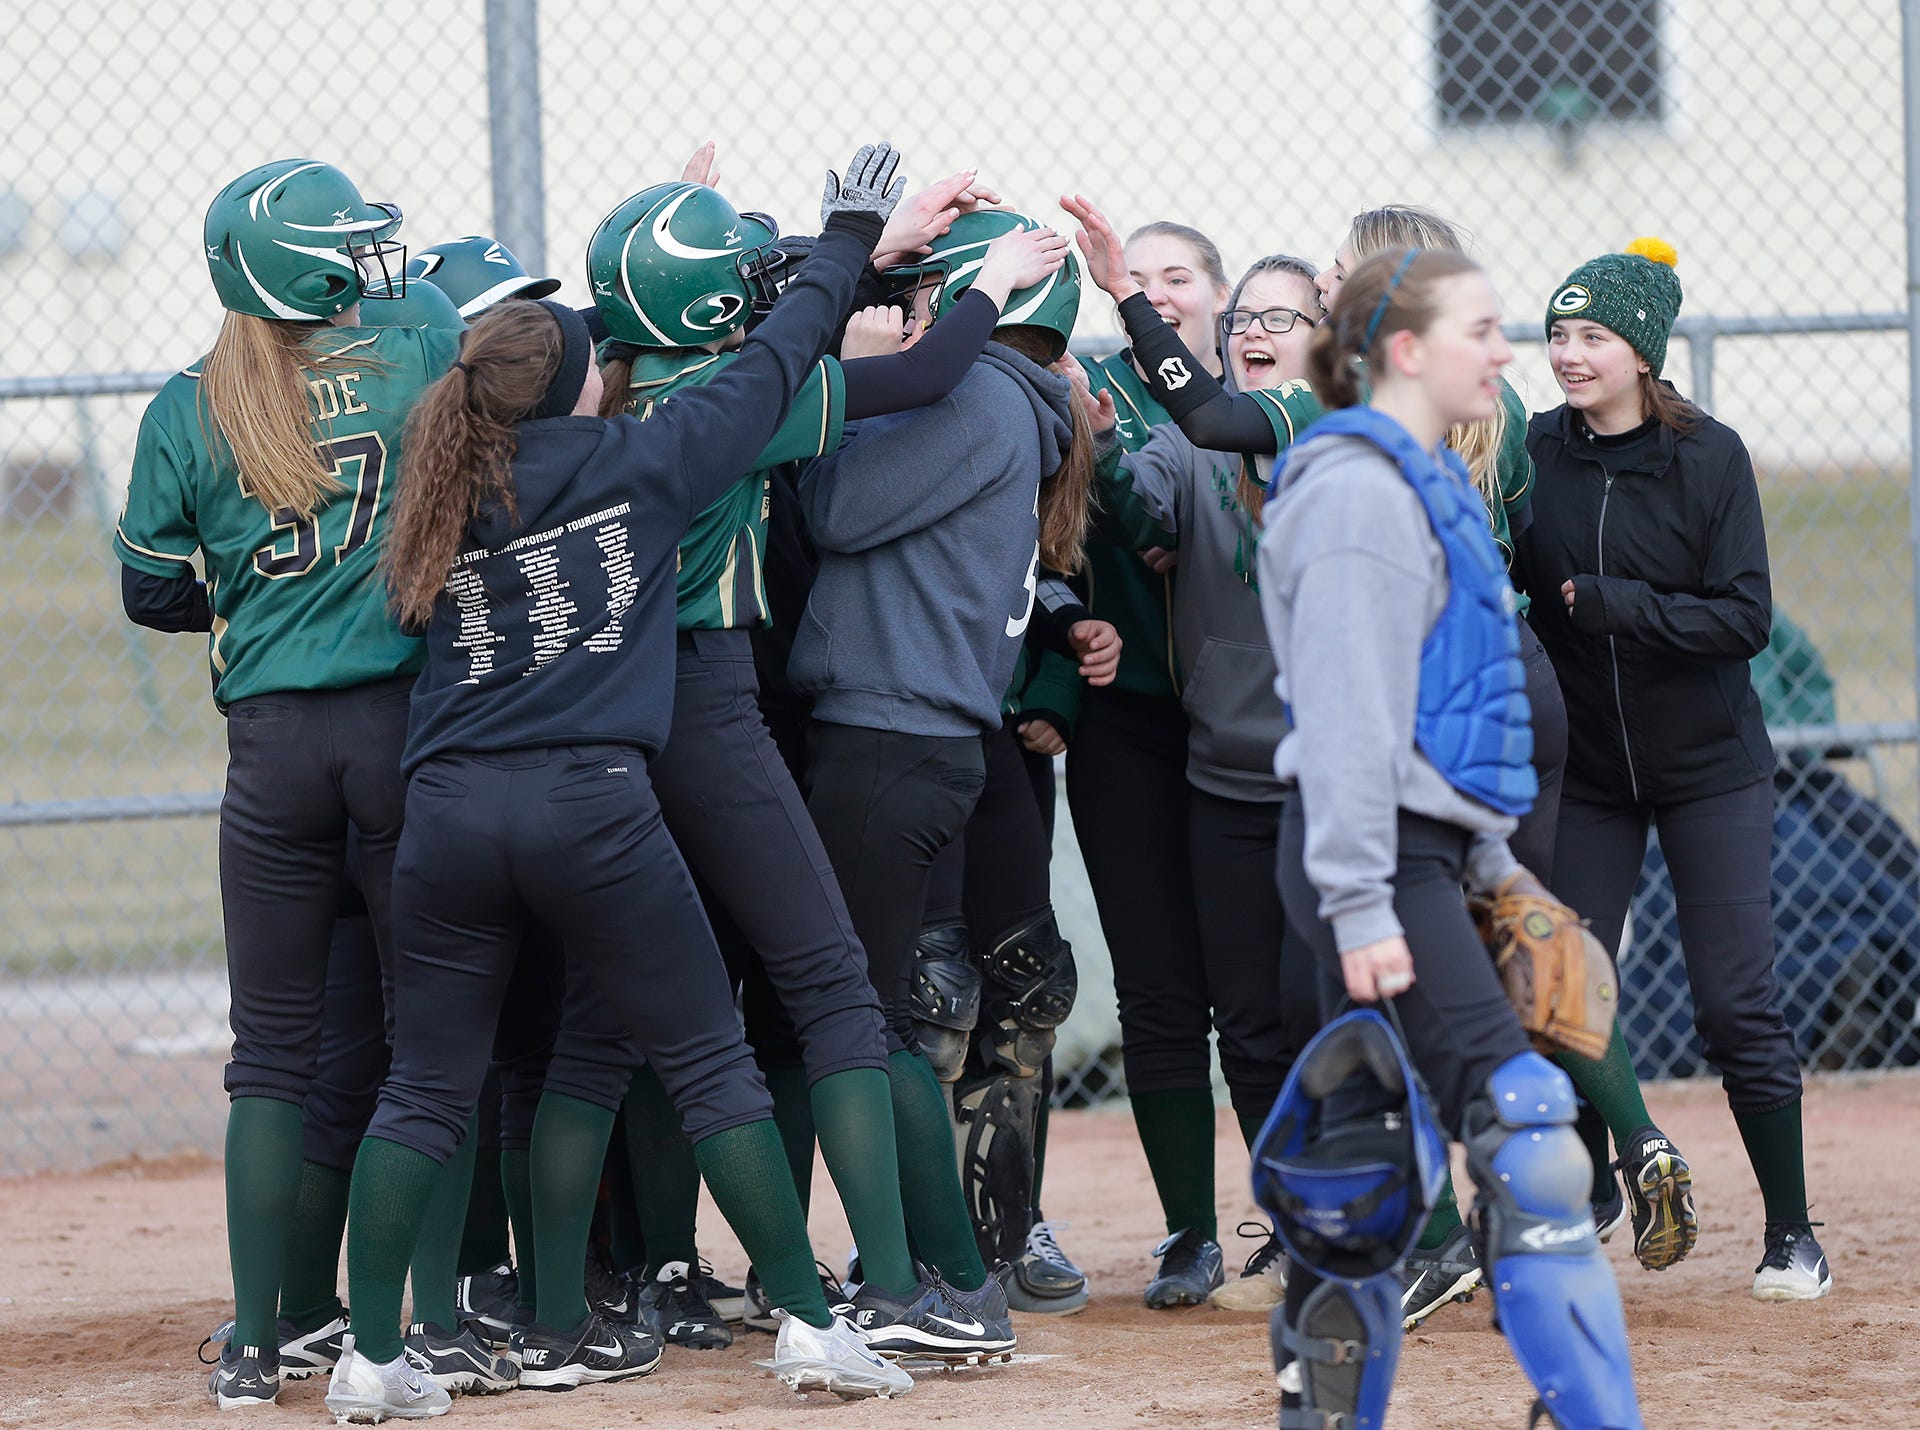 The Laconia High School softball congratulates Kennedy Krohn after her grand slam homerun against Winnebago Lutheran Academy April 9, 2019 during their game in Fond du Lac, Wis. Laconia won the game 25-9. Doug Raflik/USA TODAY NETWORK-Wisconsin